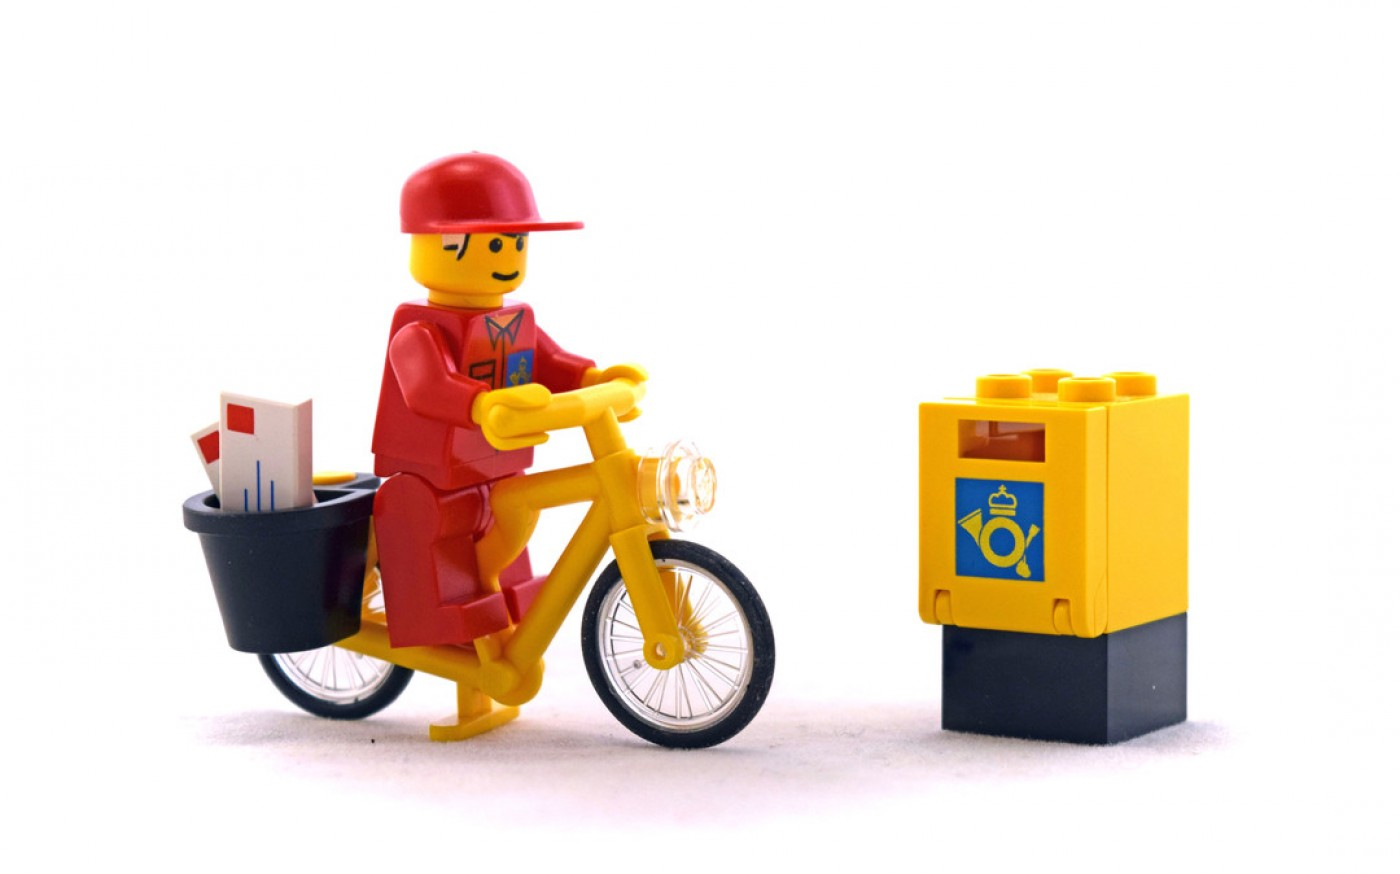 lego posta mail notifica